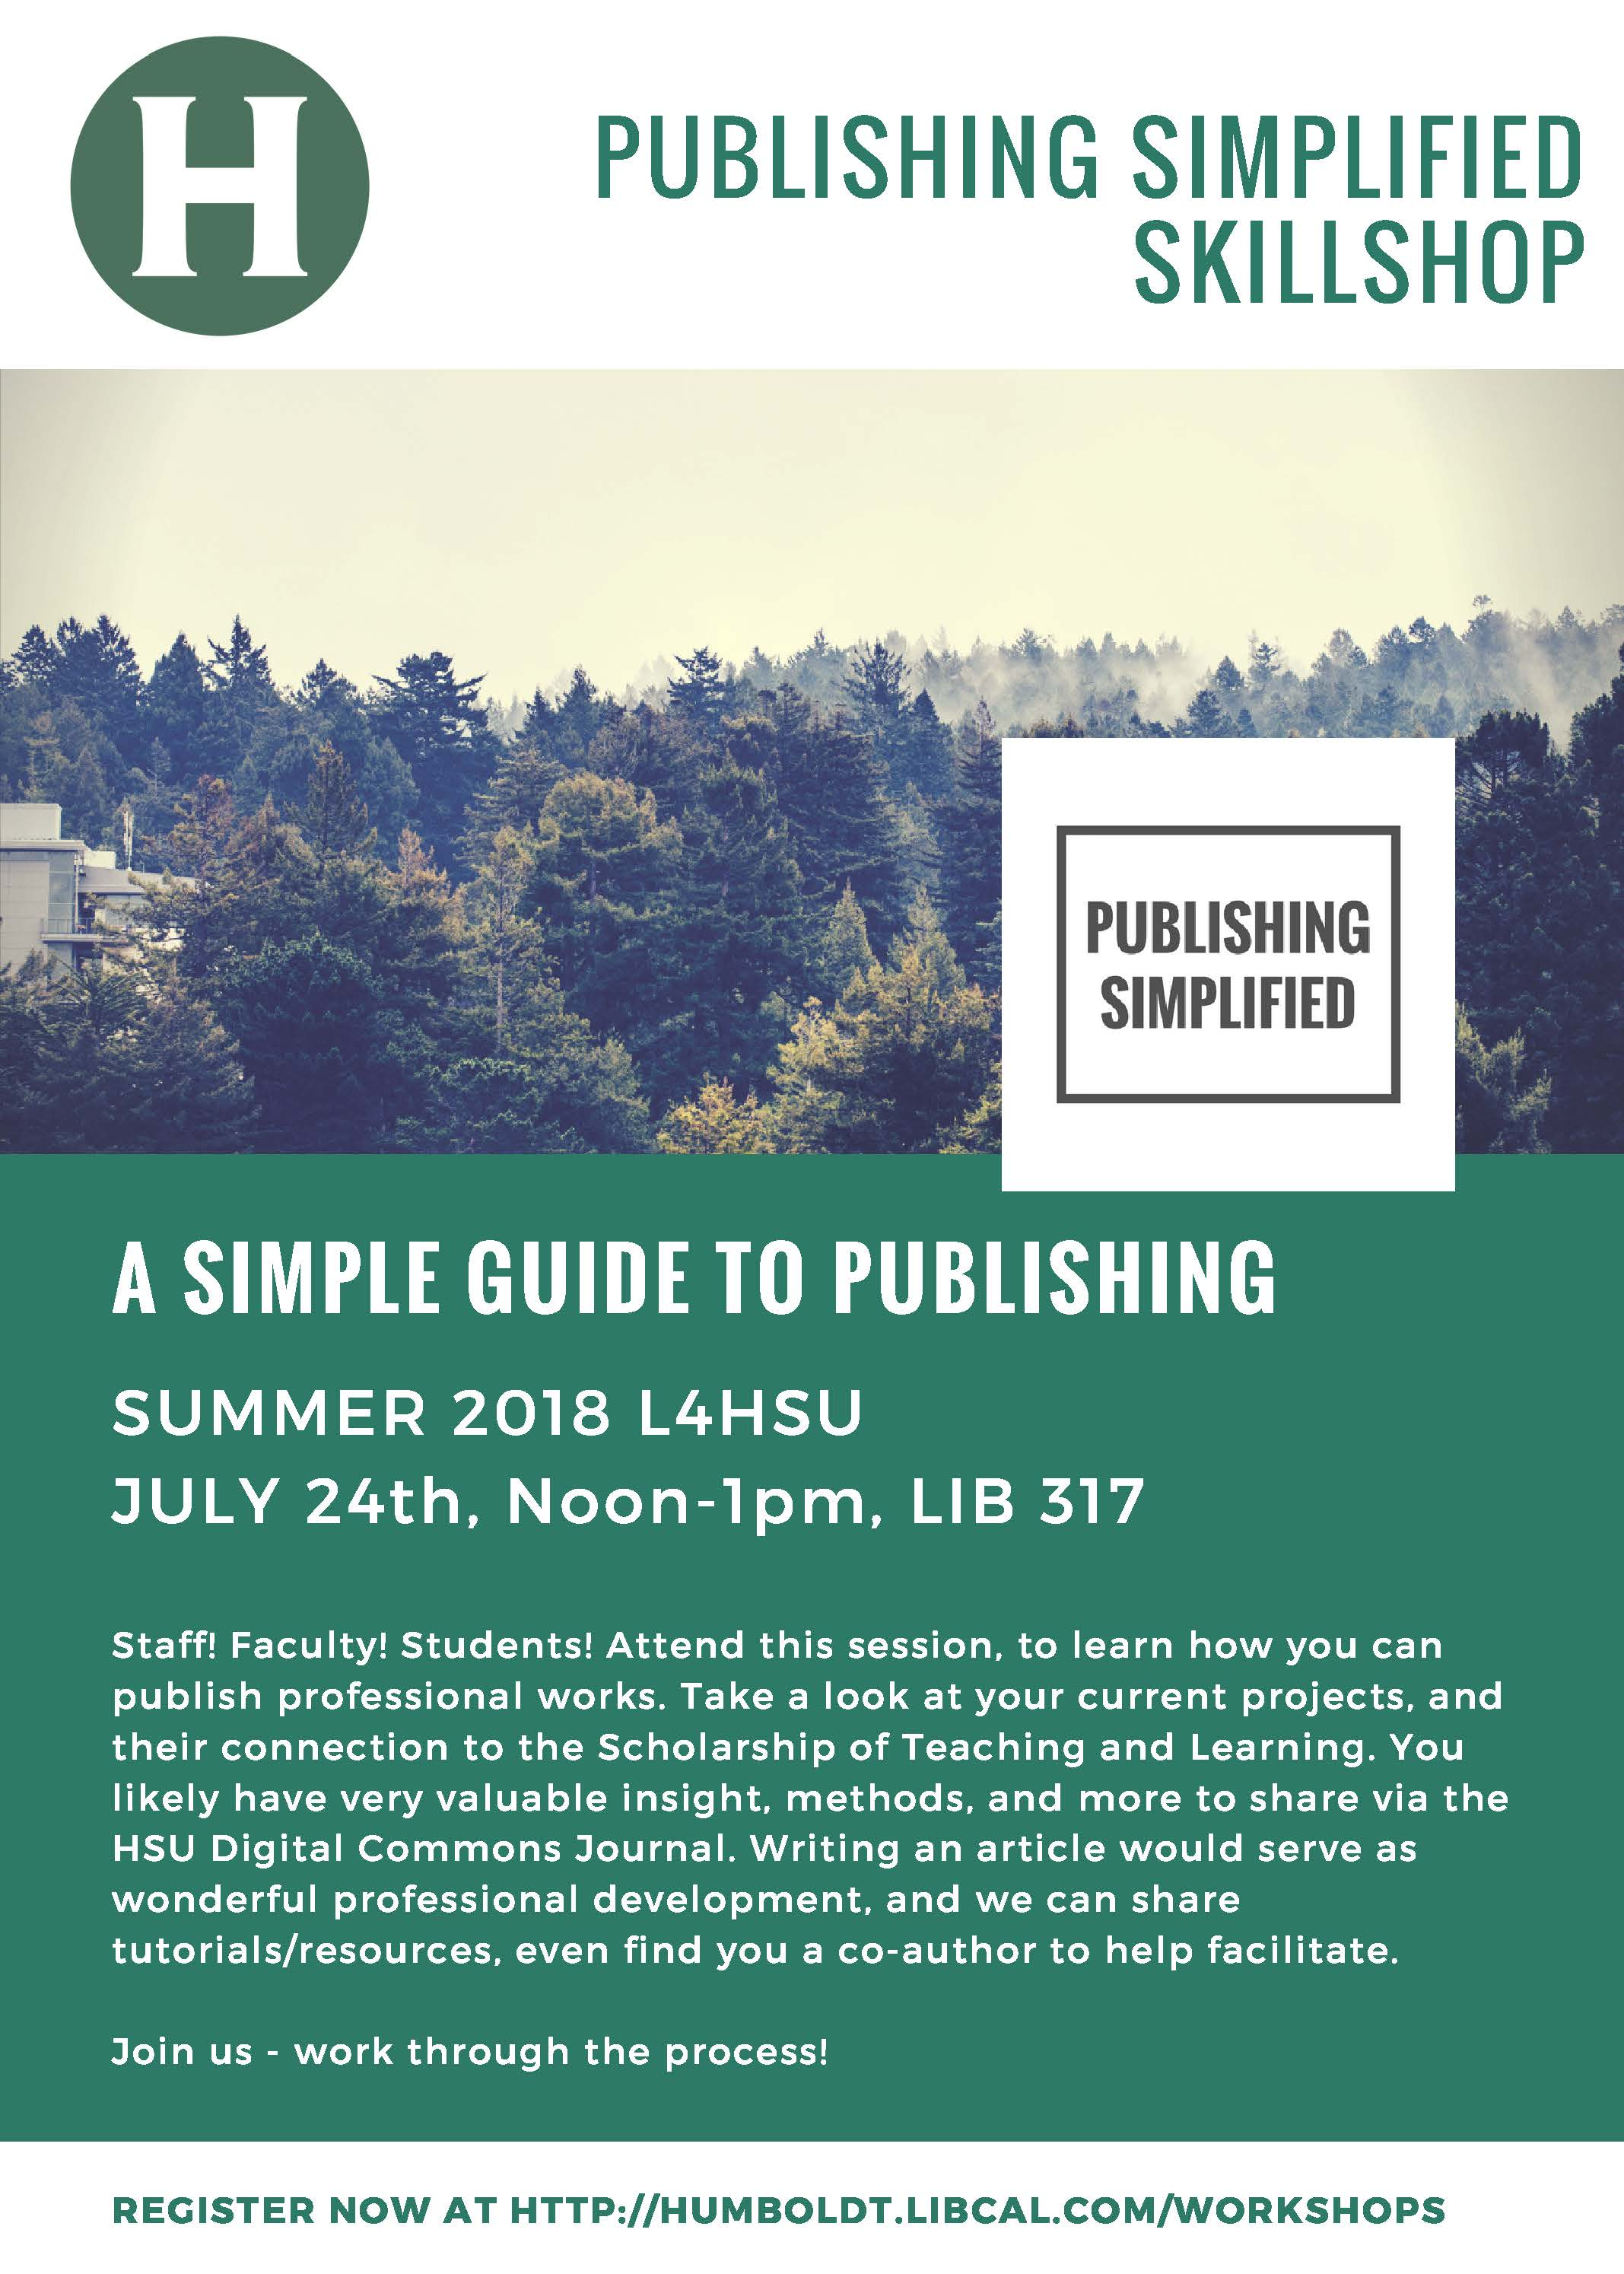 Publishing Simplified - For Staff